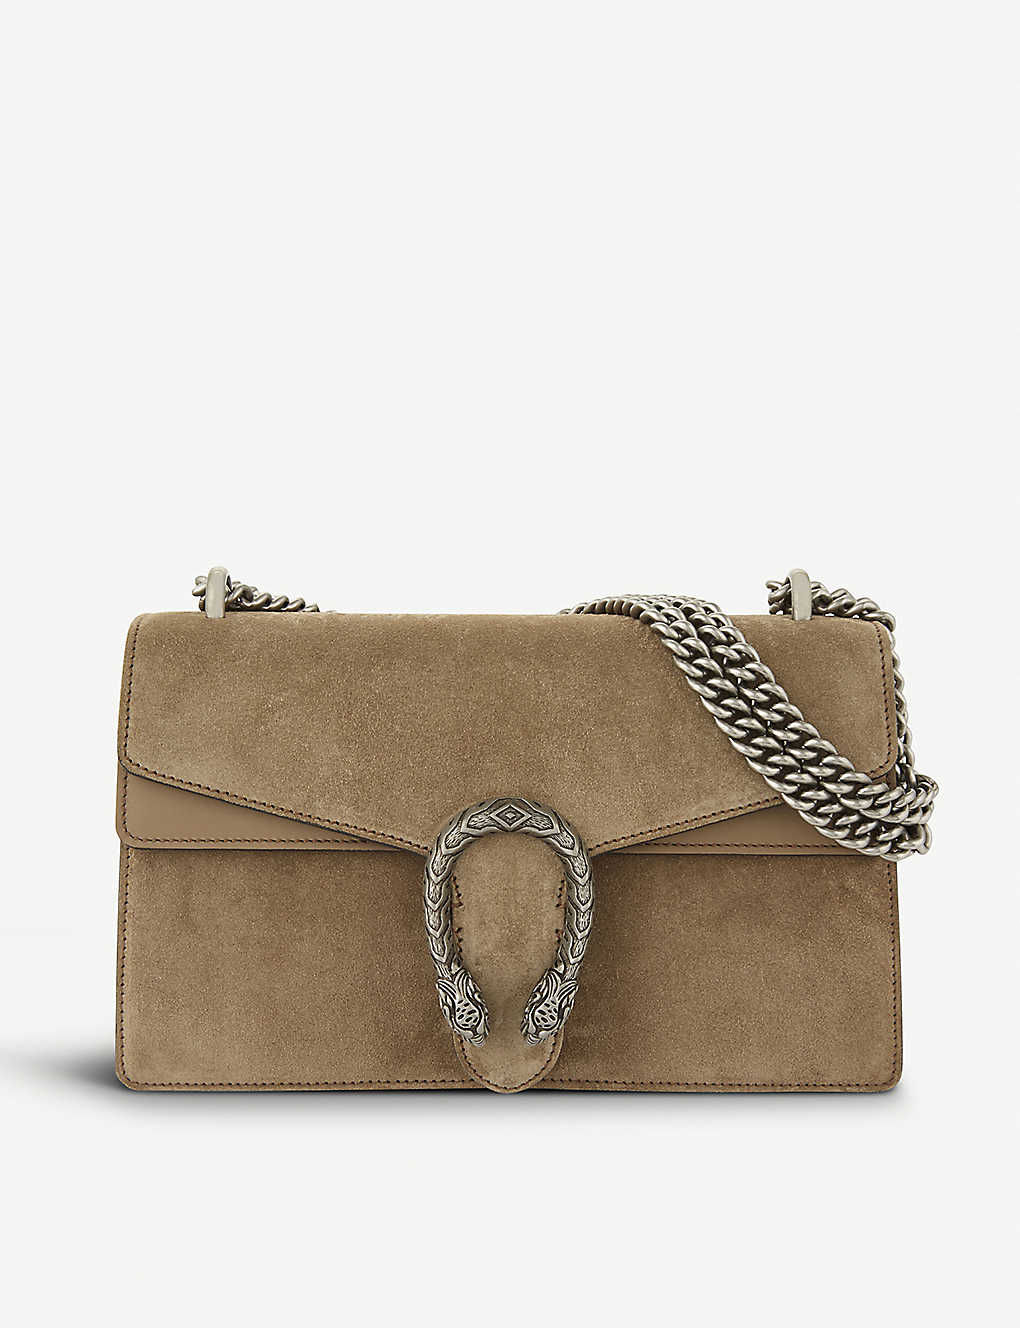 4d59d477a8d9 GUCCI - Dionysus small suede shoulder bag